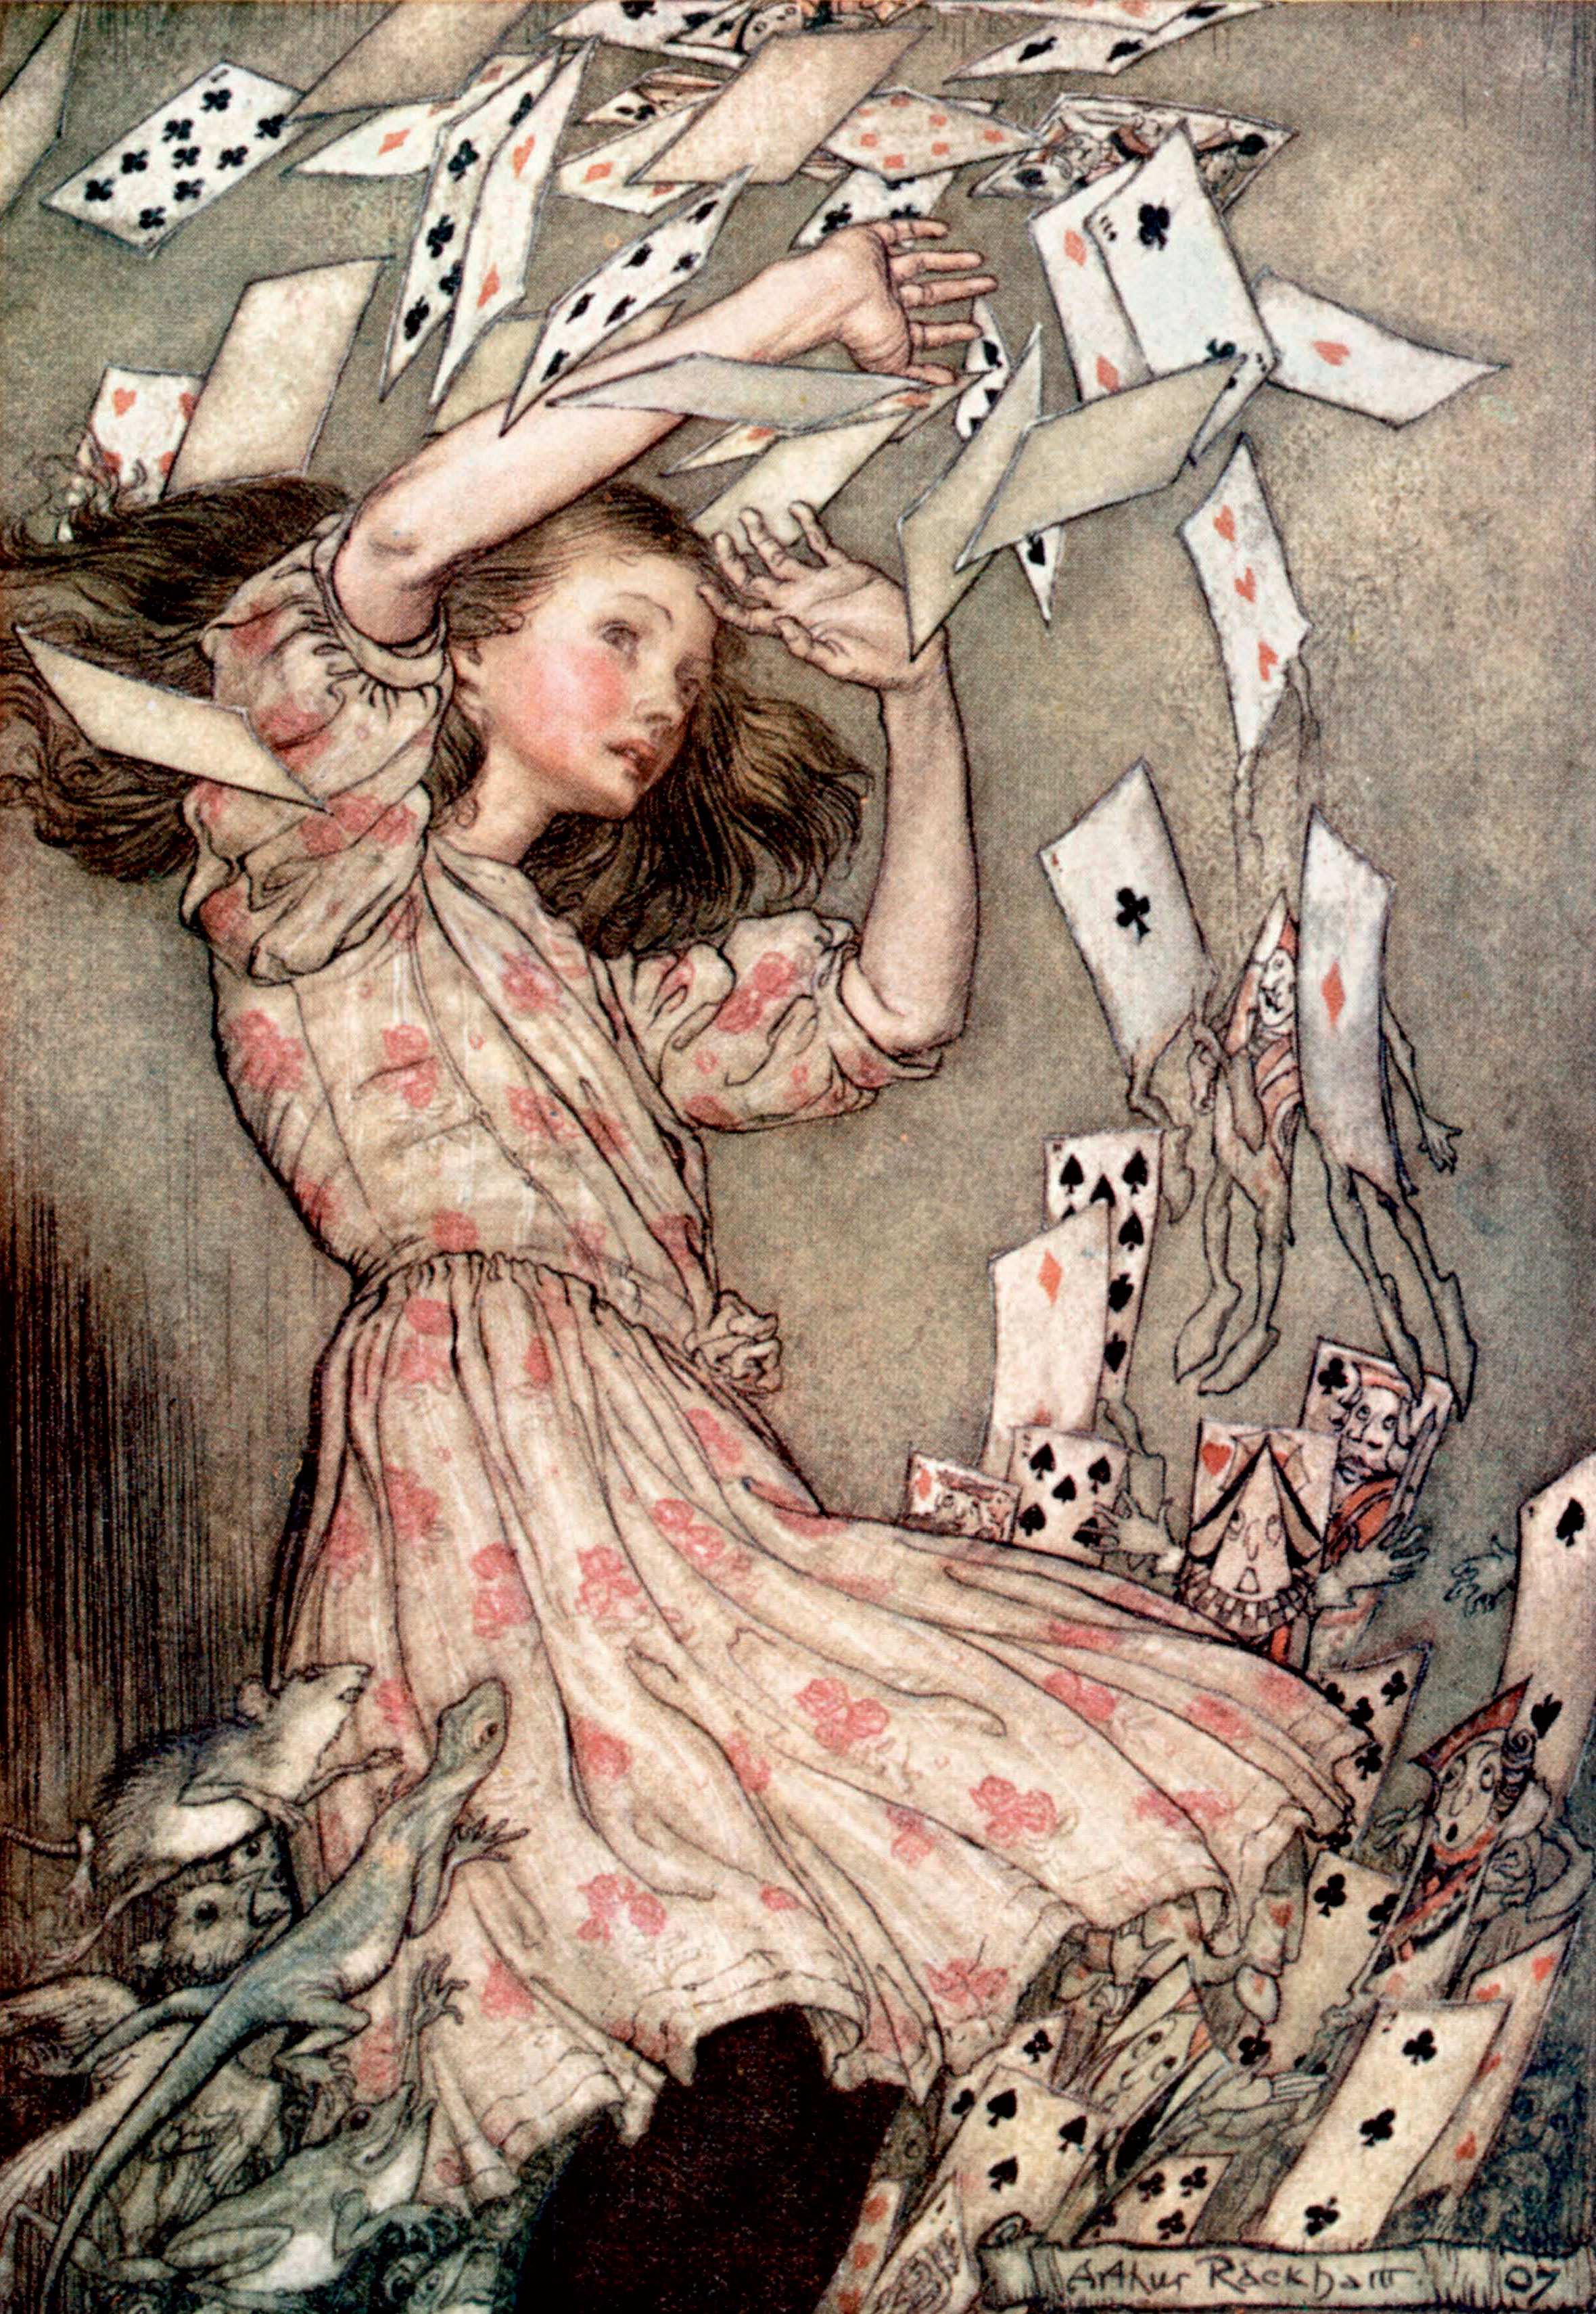 From Alice's Adventures in Wonderland by Arthur Rackham, 1907.